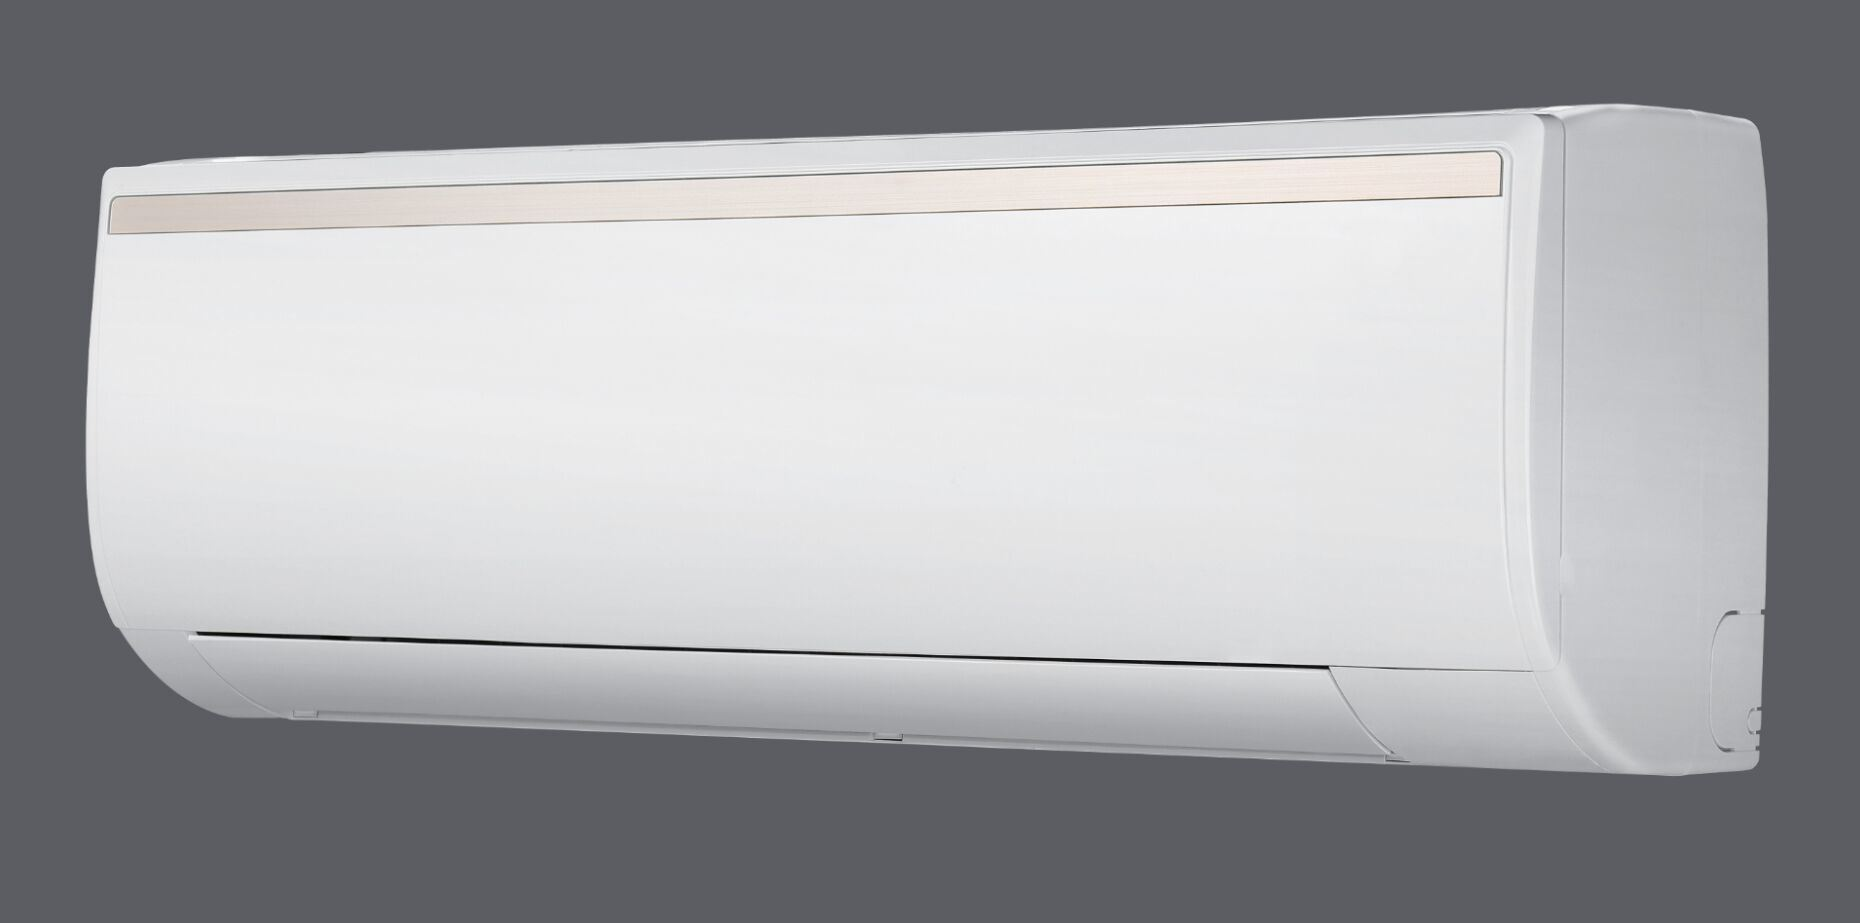 Wall Mounted Air Conditioner (2016 NEW MODEL) Photos & Pictures Made #54565B